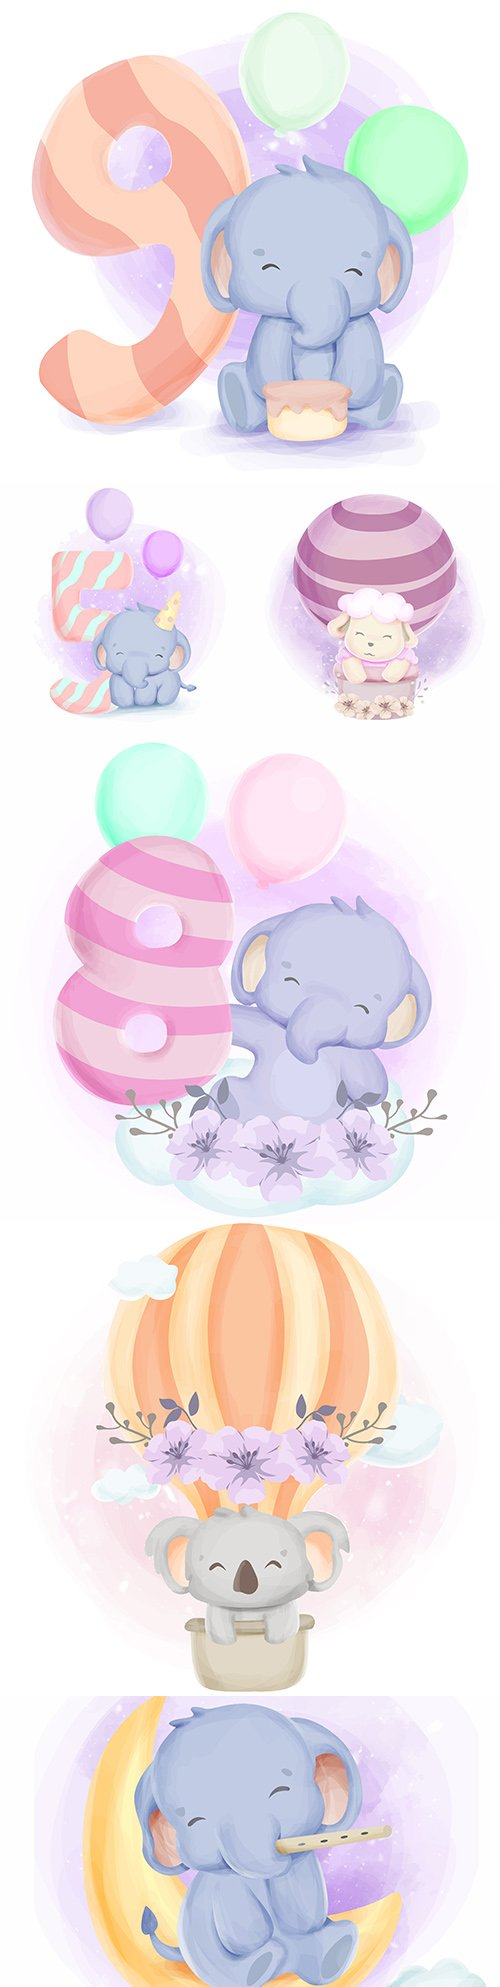 Cute elephant with balls and numbers watercolor illustration